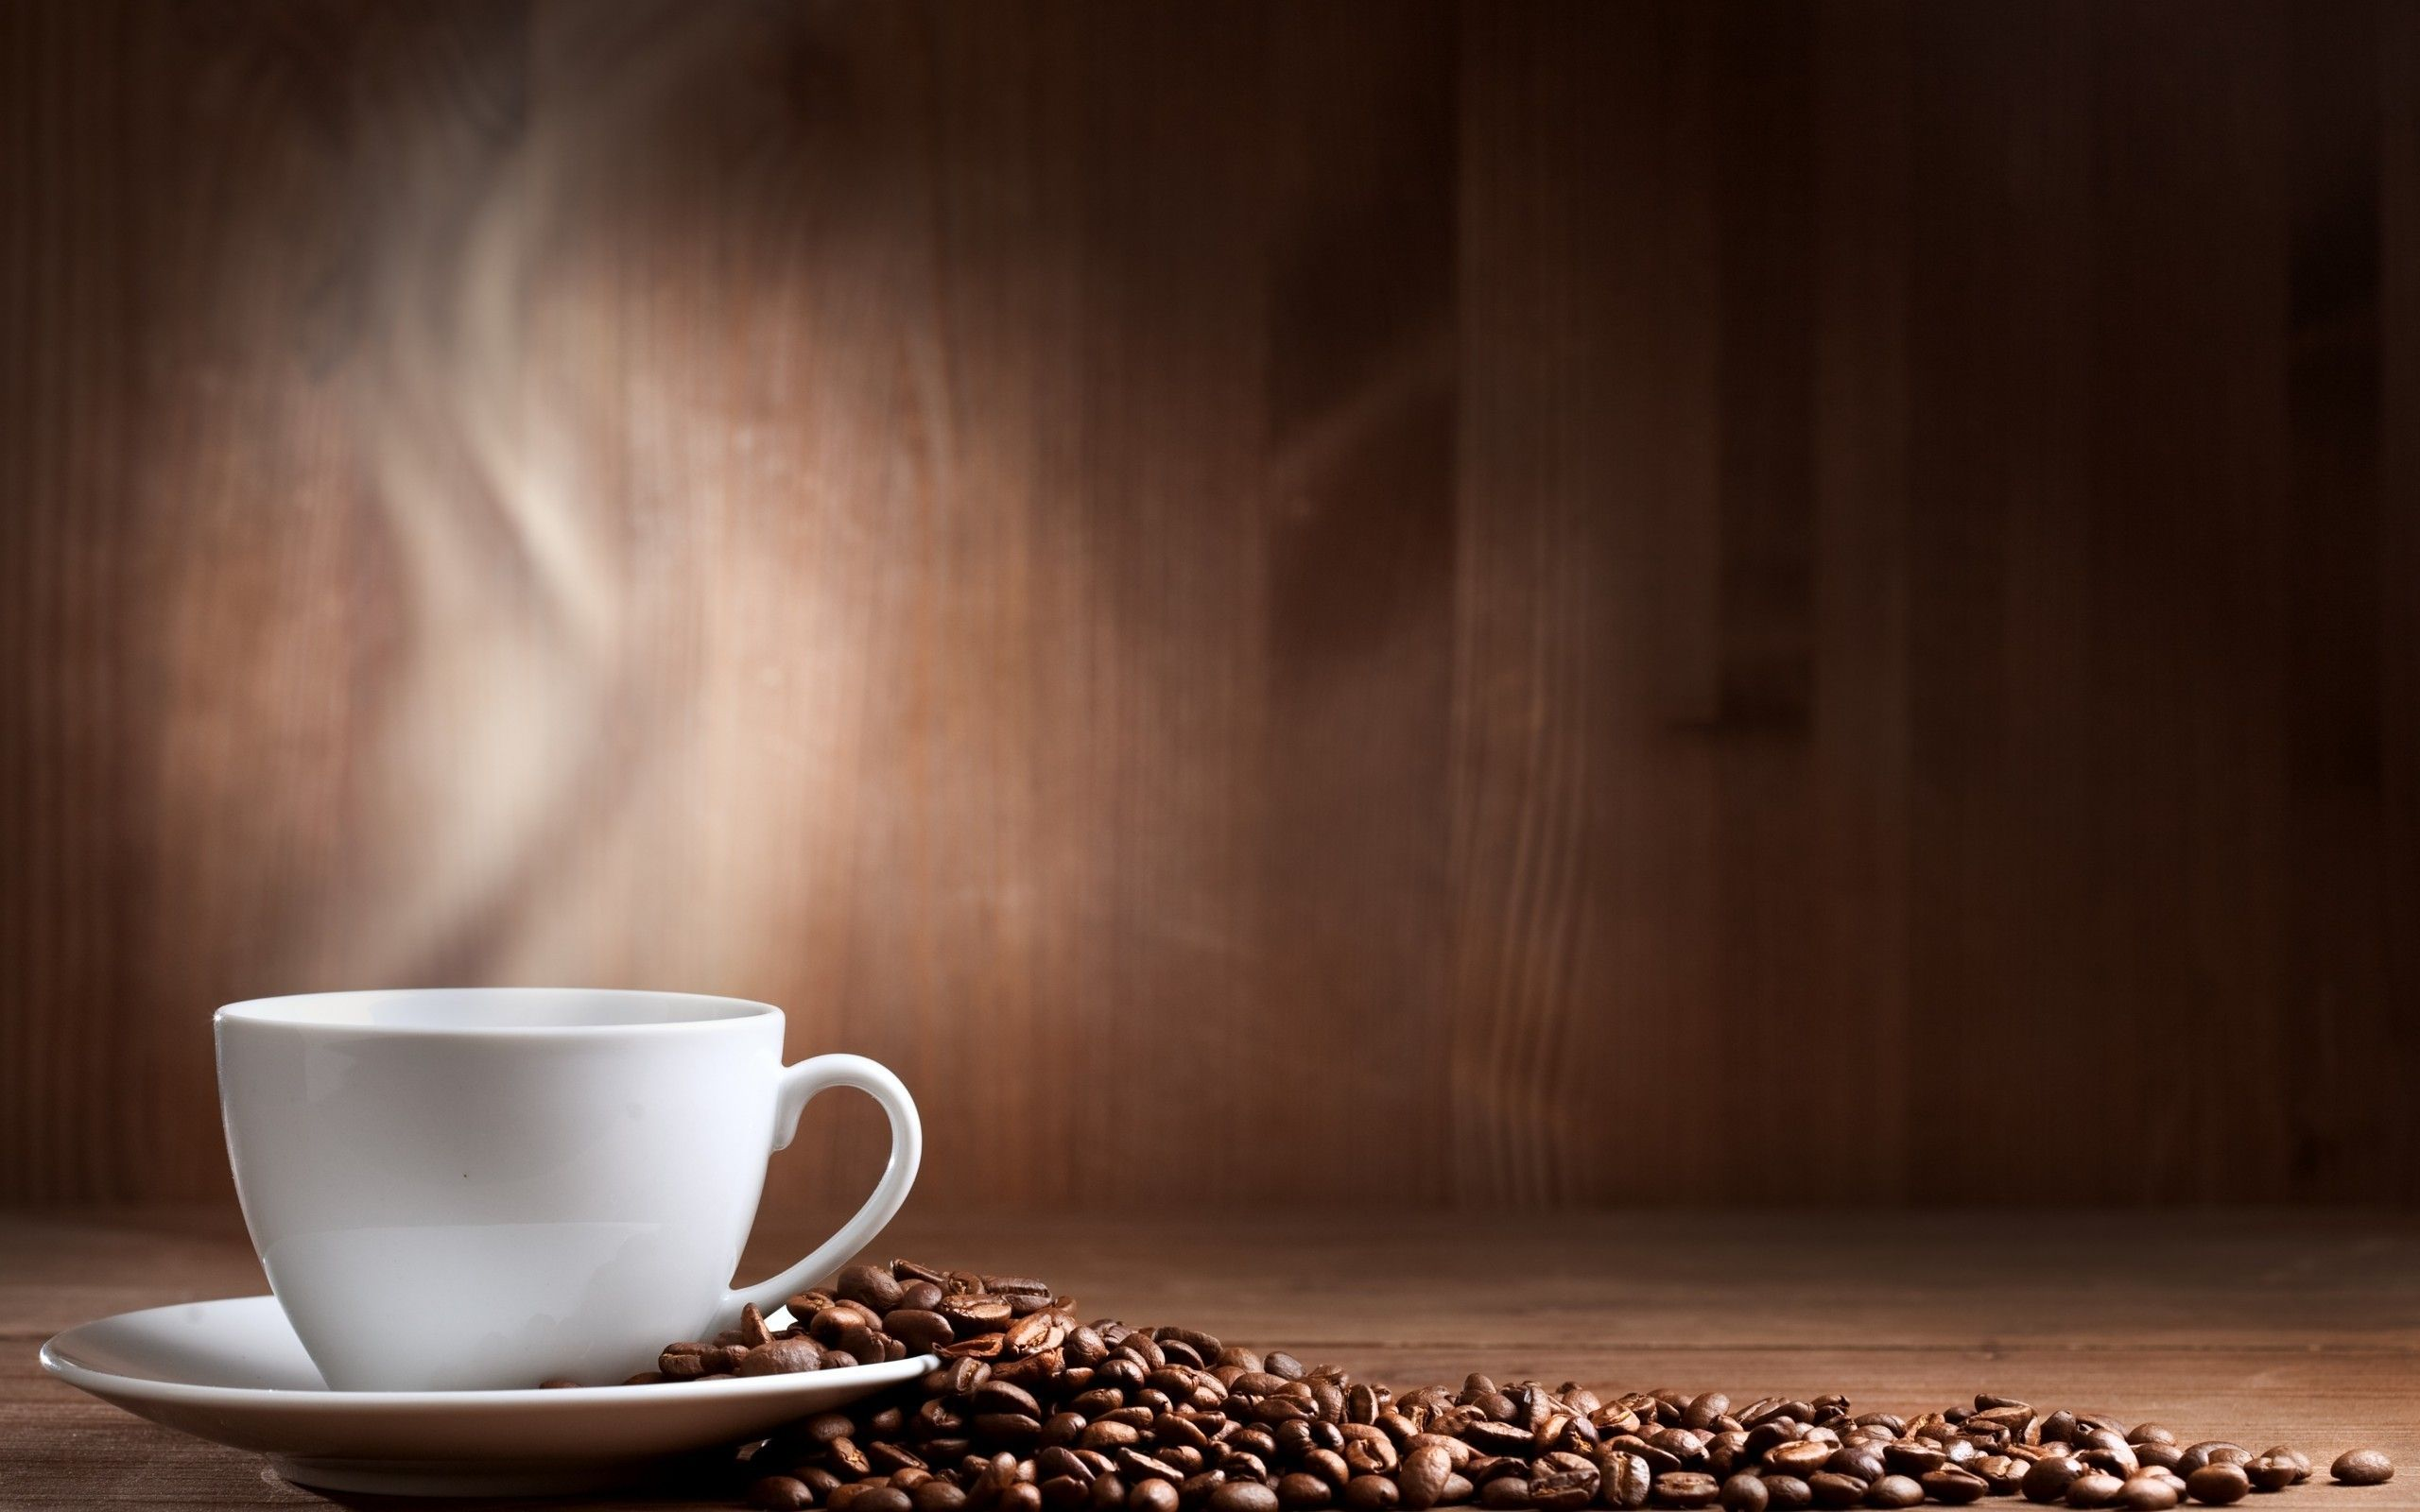 Coffee Background Wallpaper for desktop and mobile in high 2560x1600